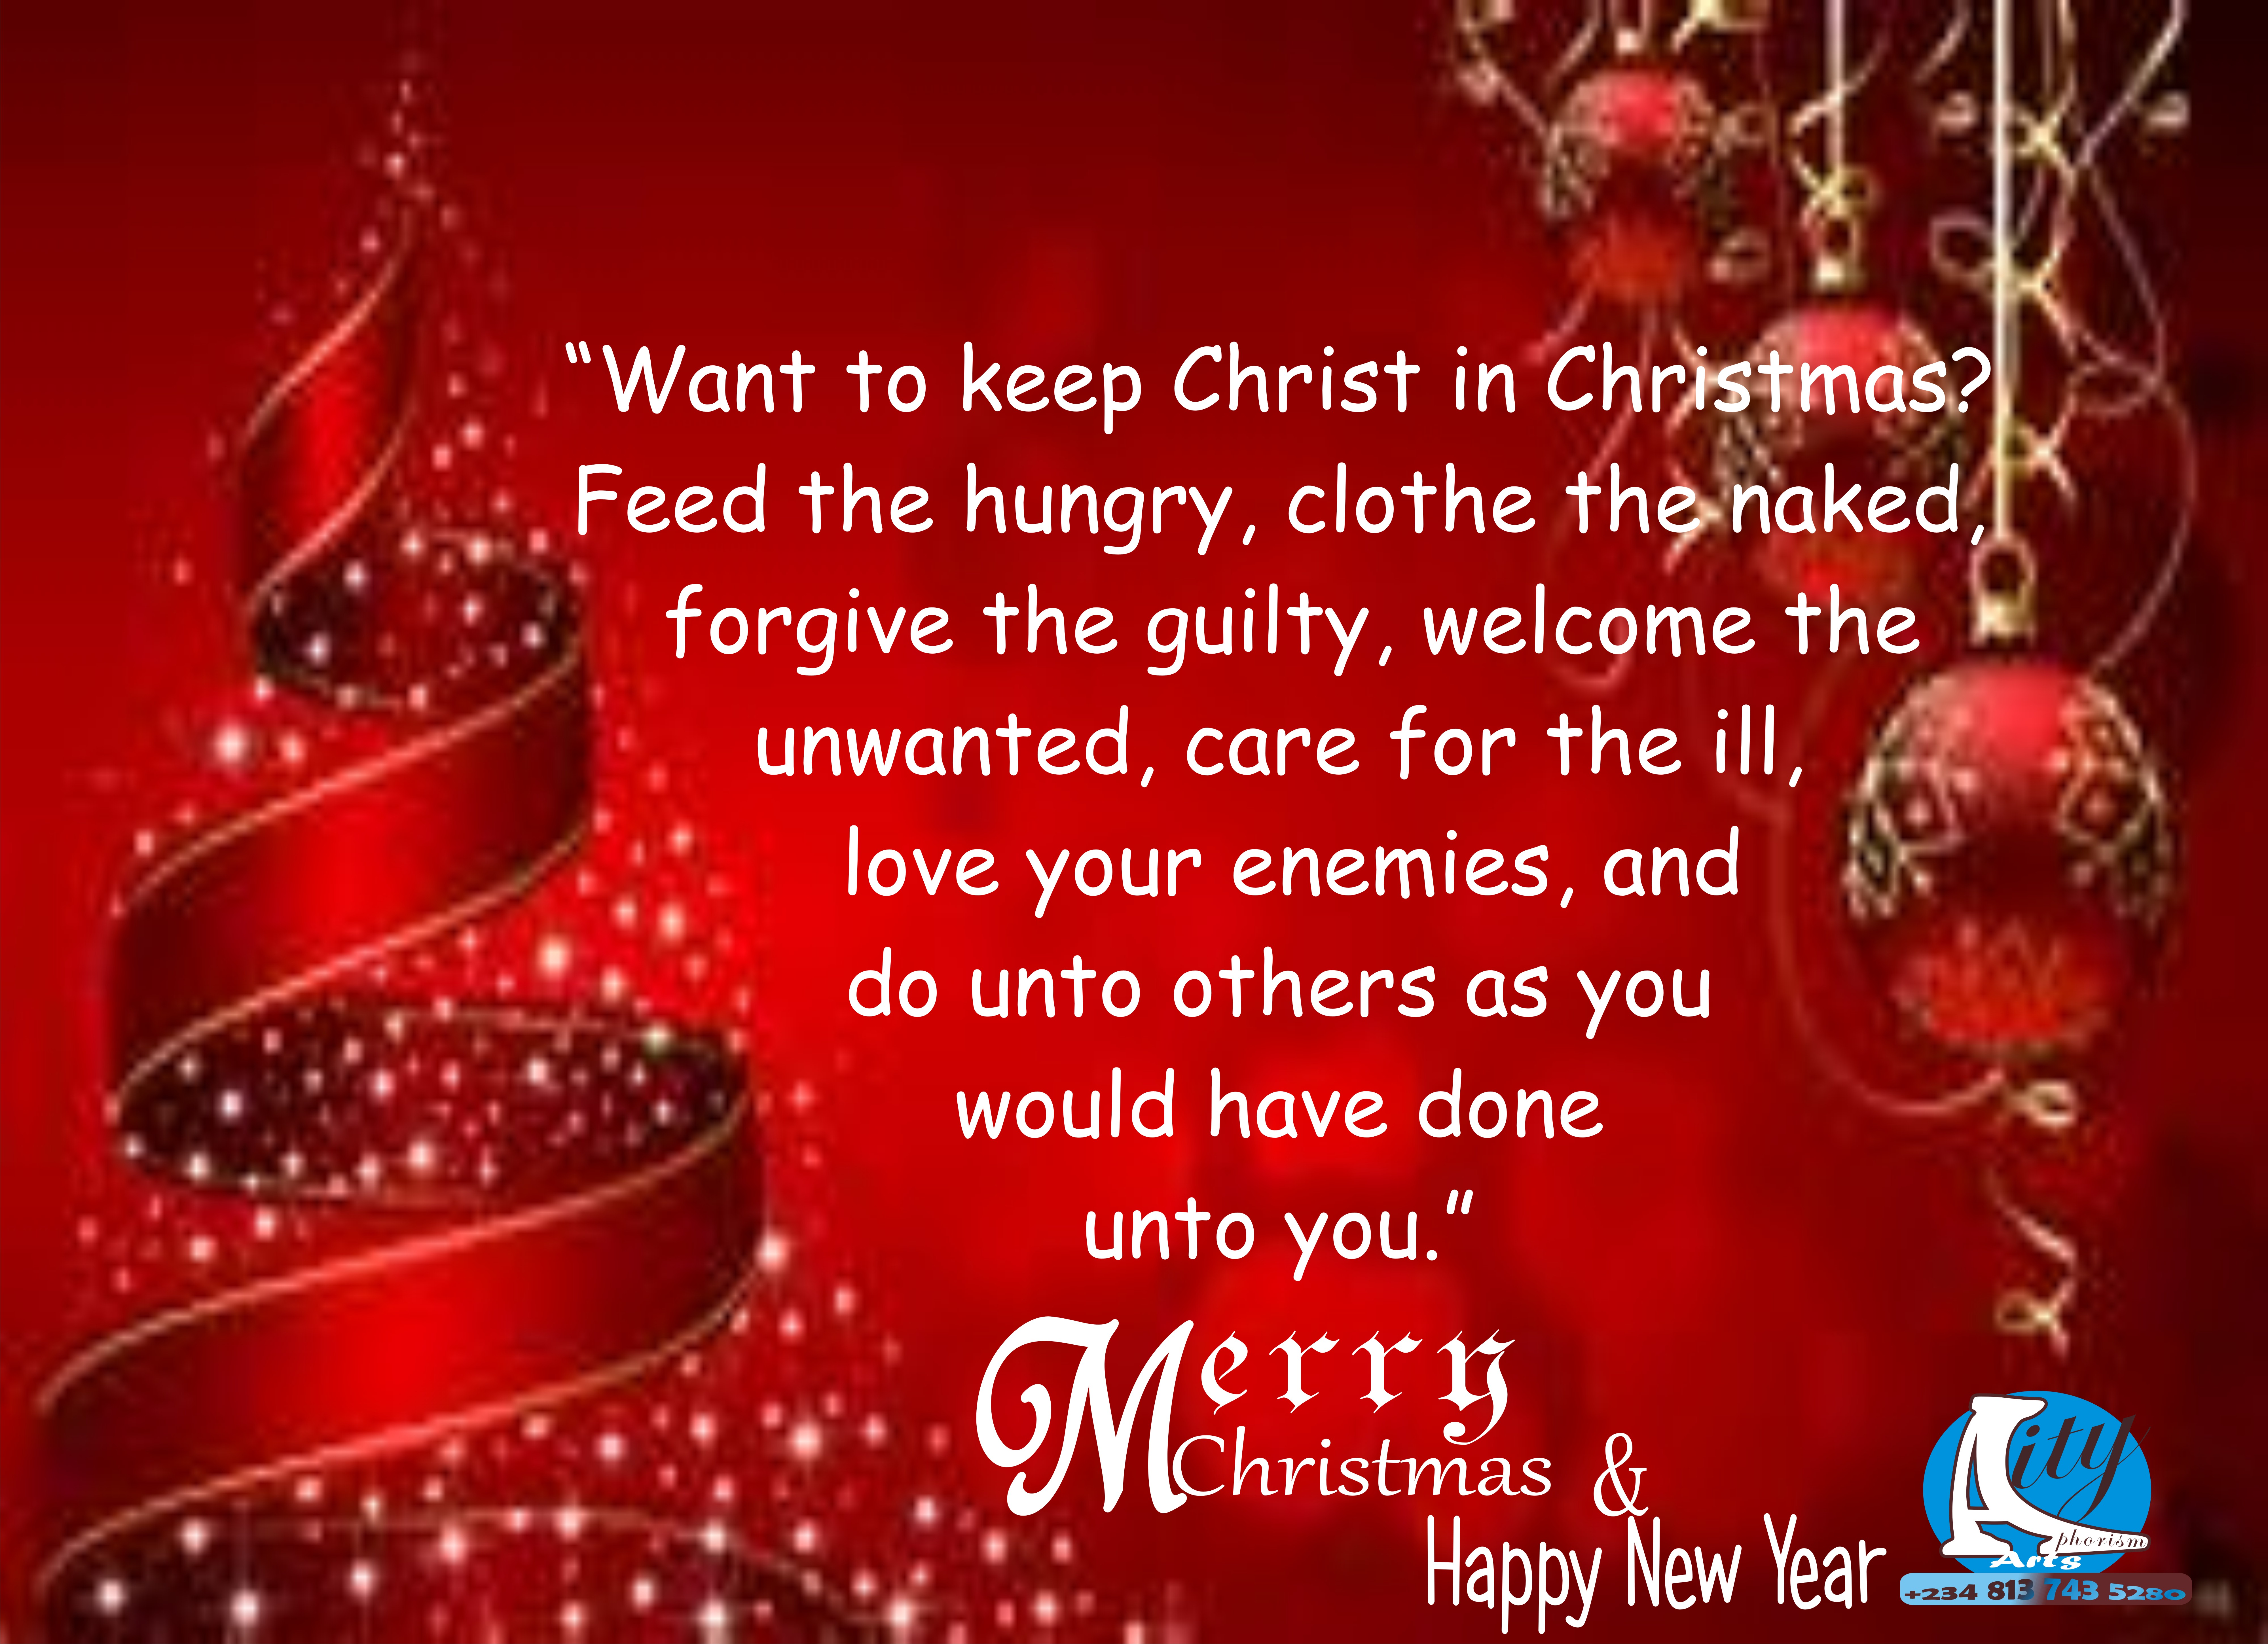 QUOTE: WANT TO KEEP CHRIST IN CHRISTMAS? – Aphorism CITY